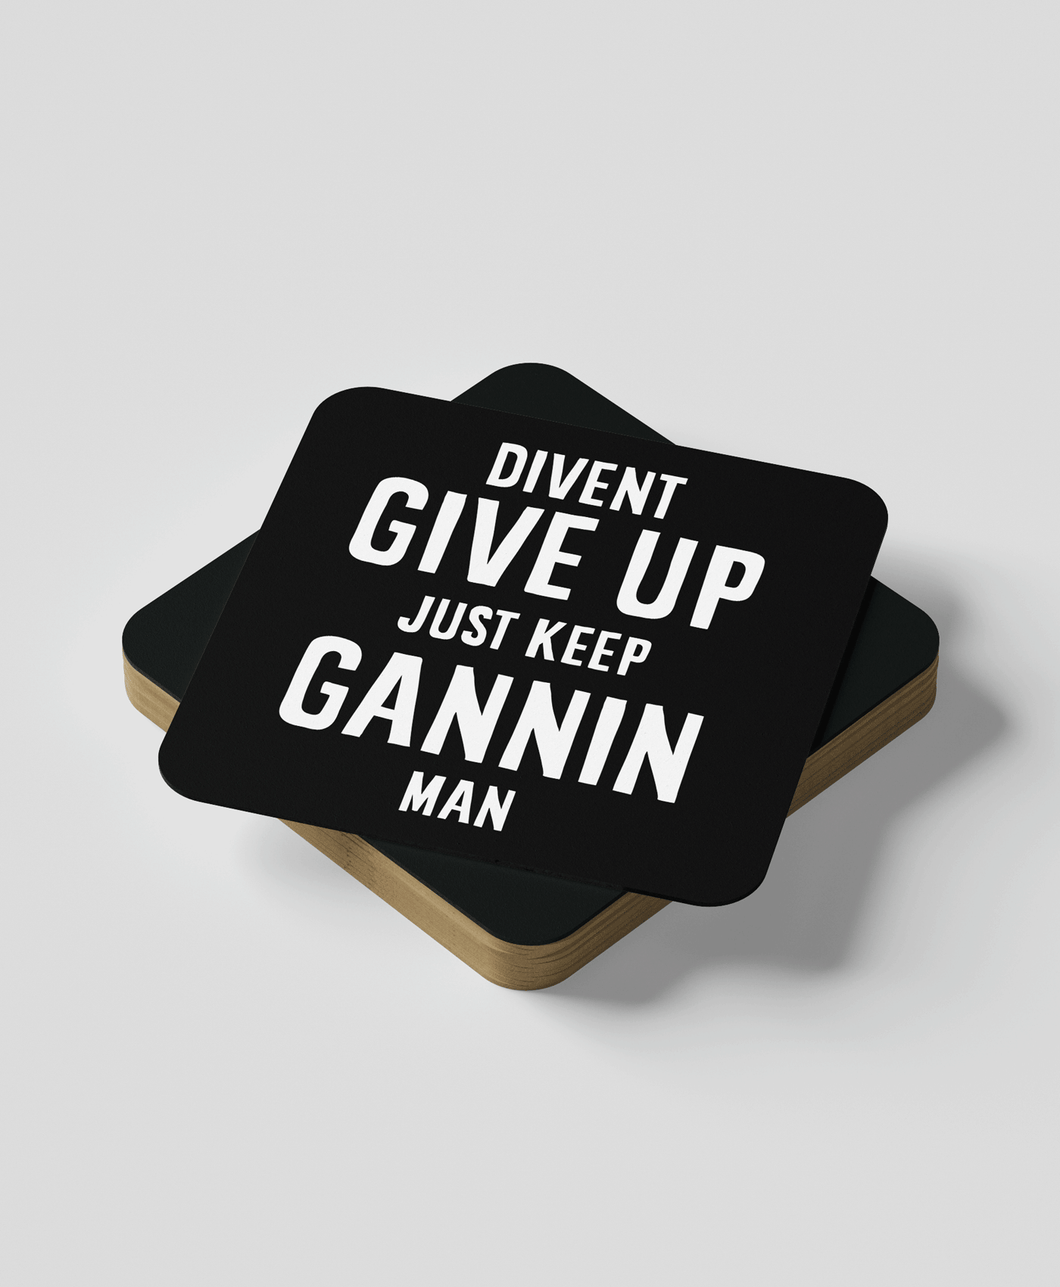 Divent Give Up - Coaster (Black)